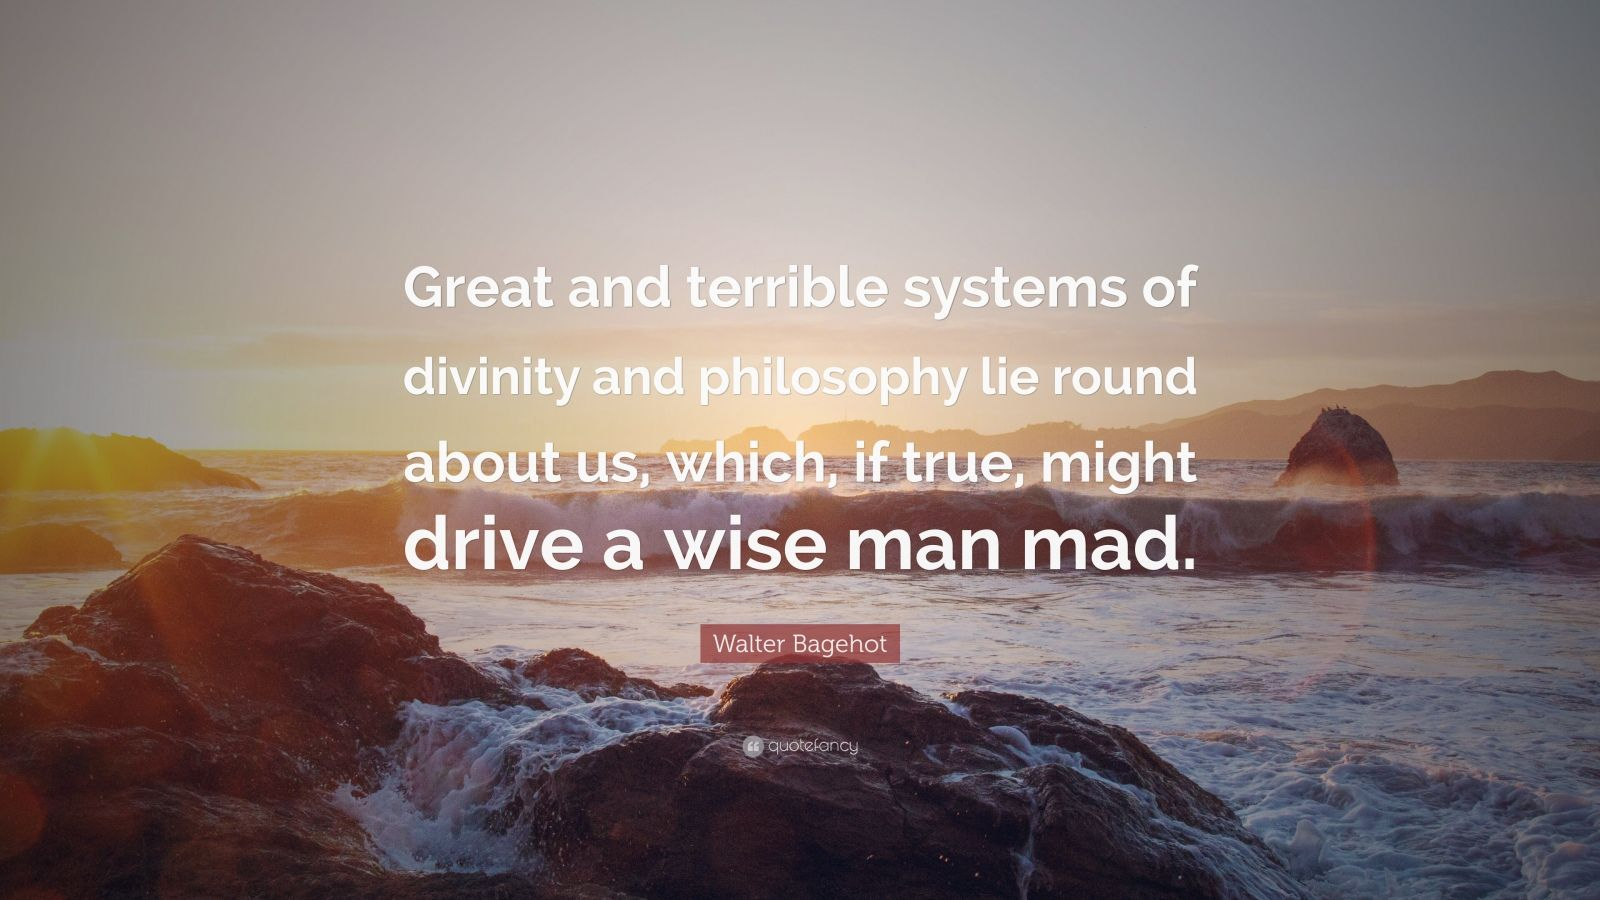 """Walter Bagehot Quote: """"Great and terrible systems of divinity and philosophy lie round about us, which, if true, might drive a wise man mad."""""""